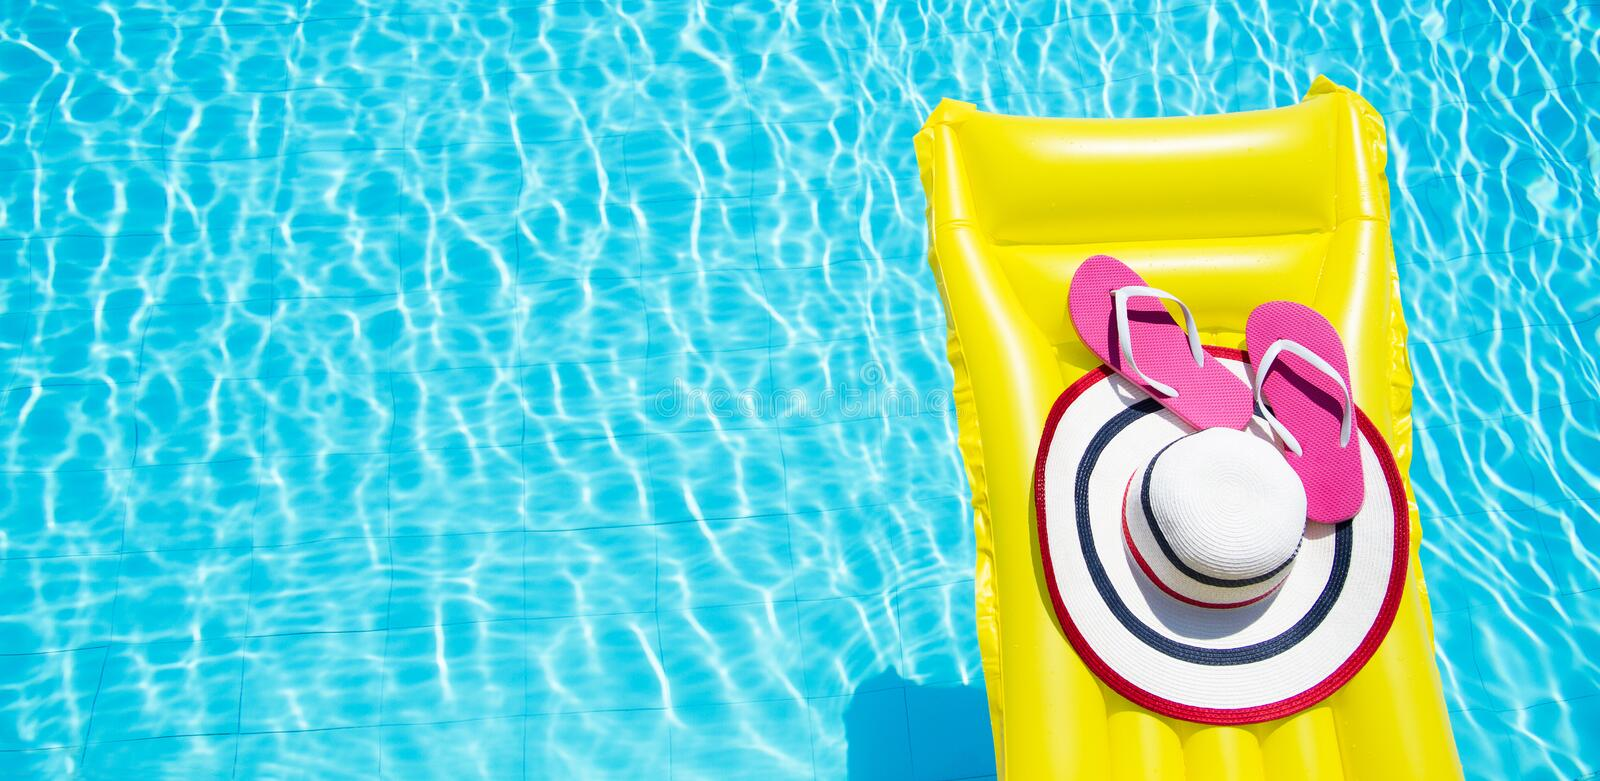 Beach summer holiday background. Inflatable air mattress, flip flops and hat on swimming pool. Yellow lilo and summertime stock photo